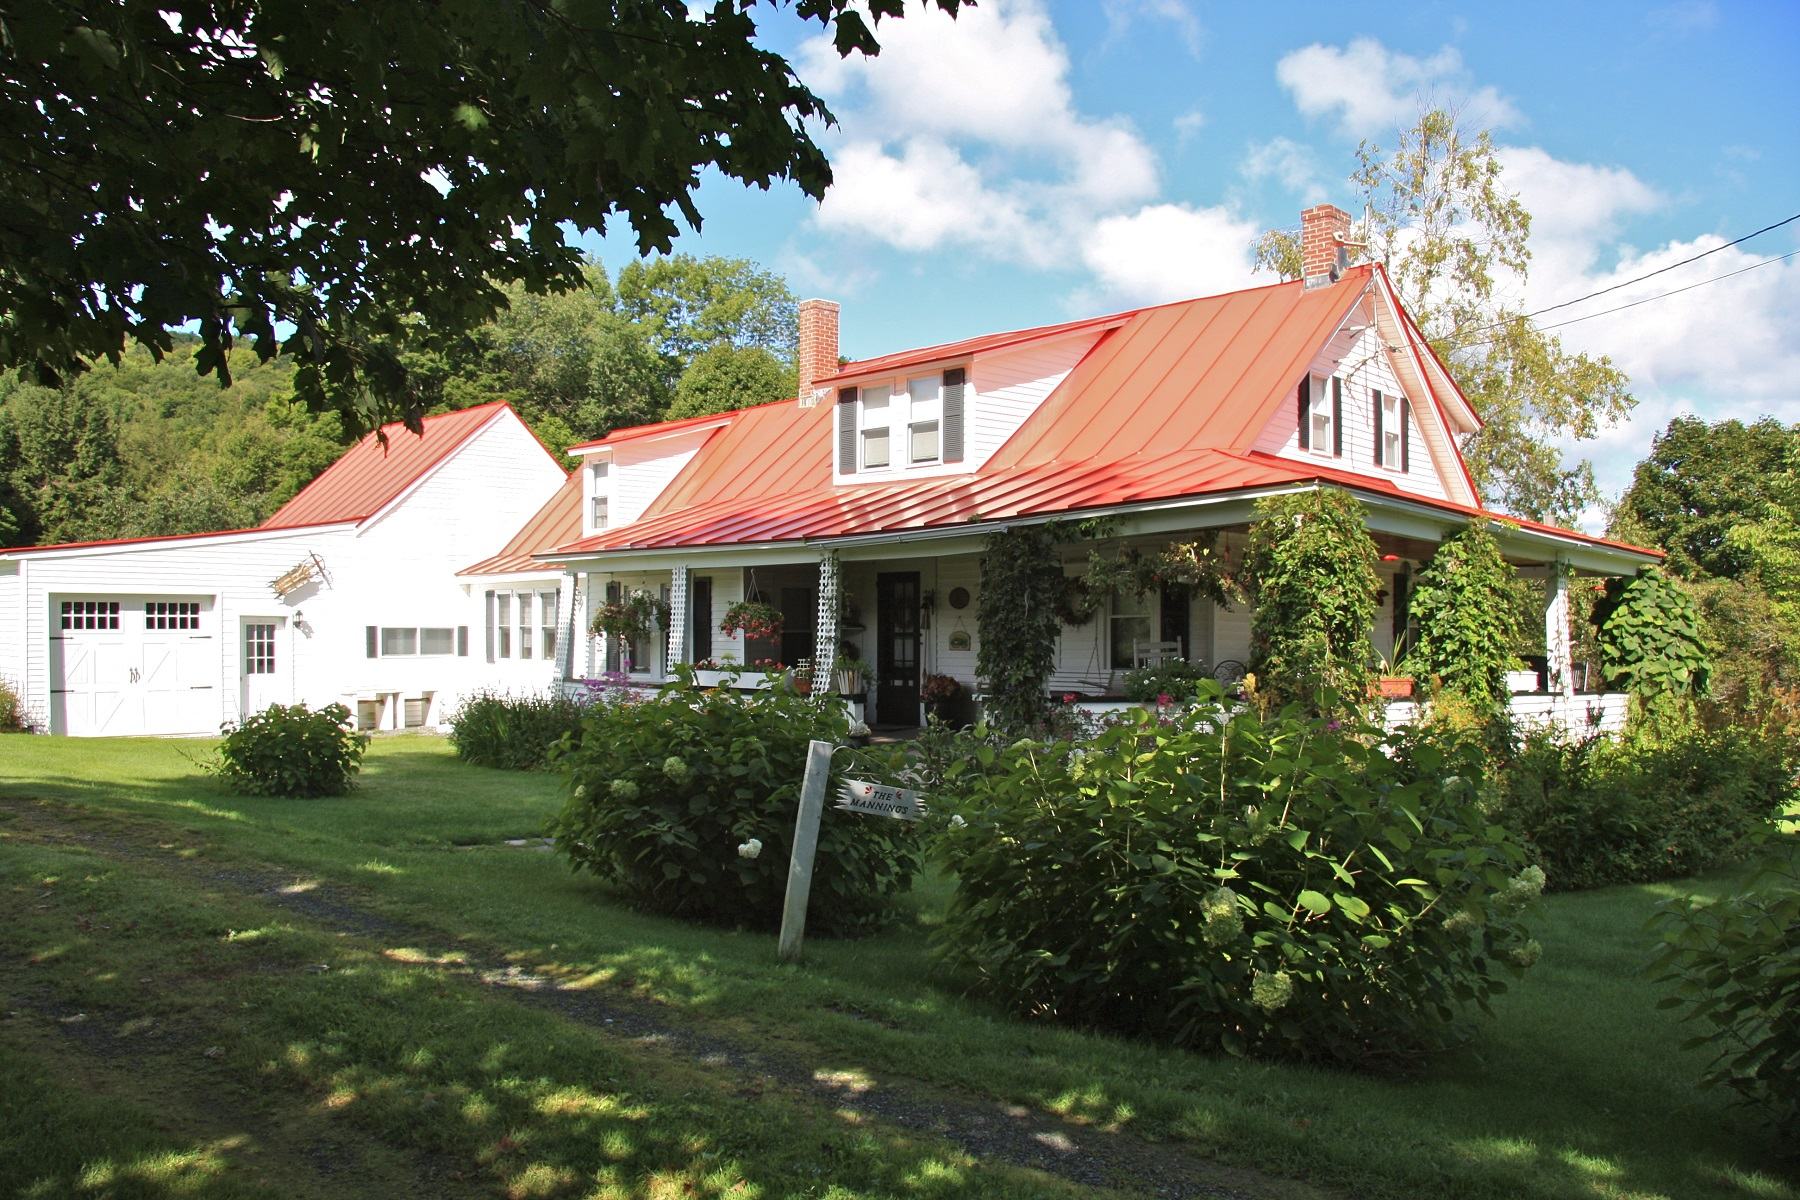 Single Family Homes for Sale at Located in Heart of Village 72 Adams Road Barnard, Vermont 05031 United States